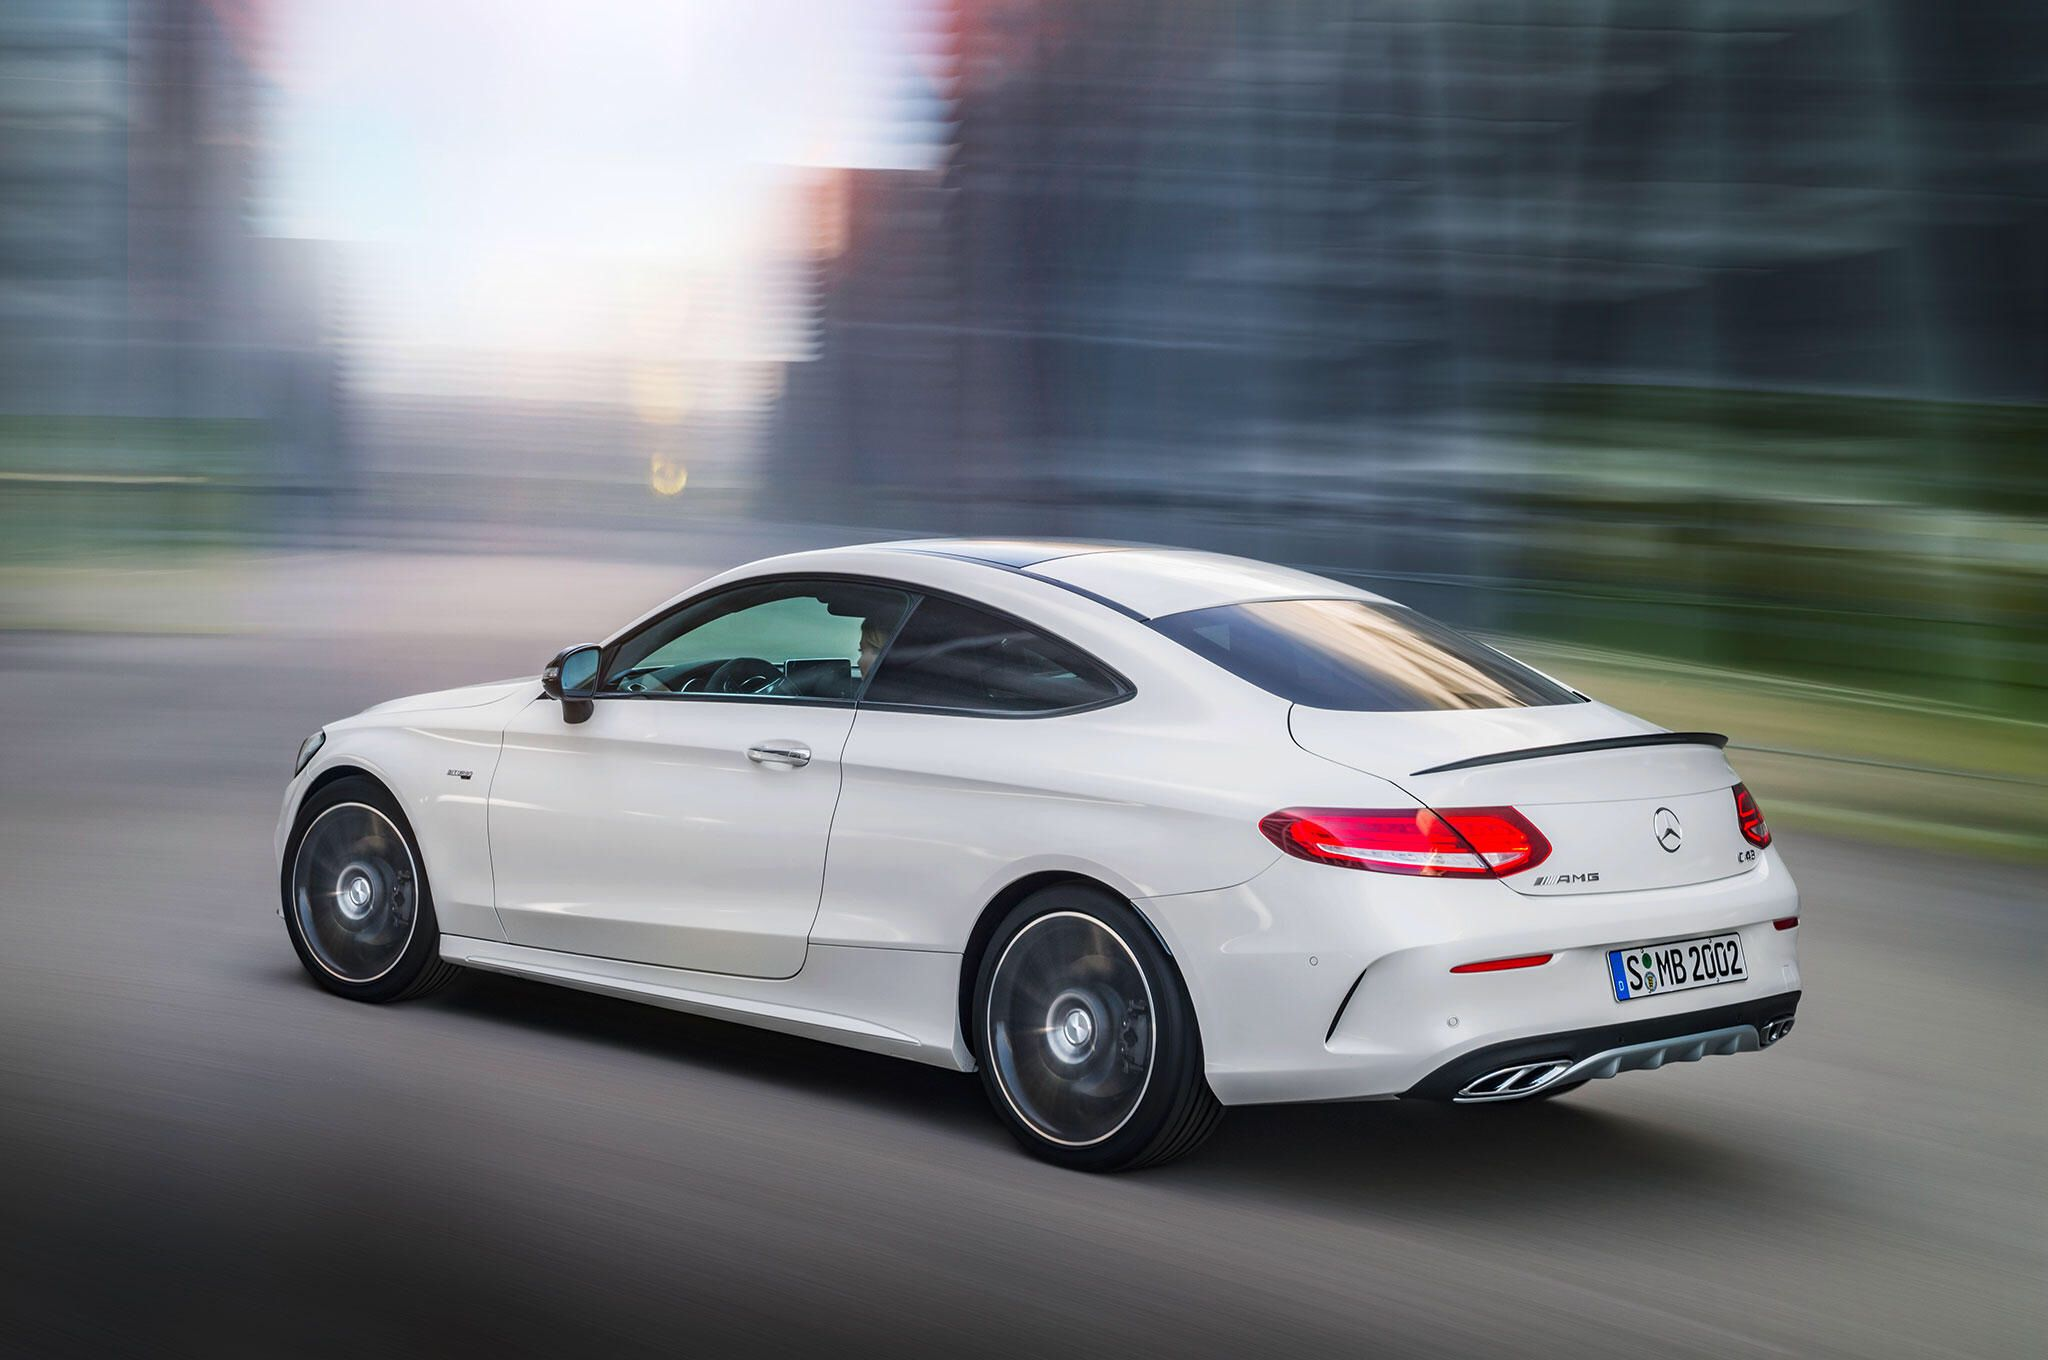 2017 Mercedes Amg C43 Coupe Joins The C Class Family Mercedes Amg Mercedes Benz Cars Mercedes Benz Amg